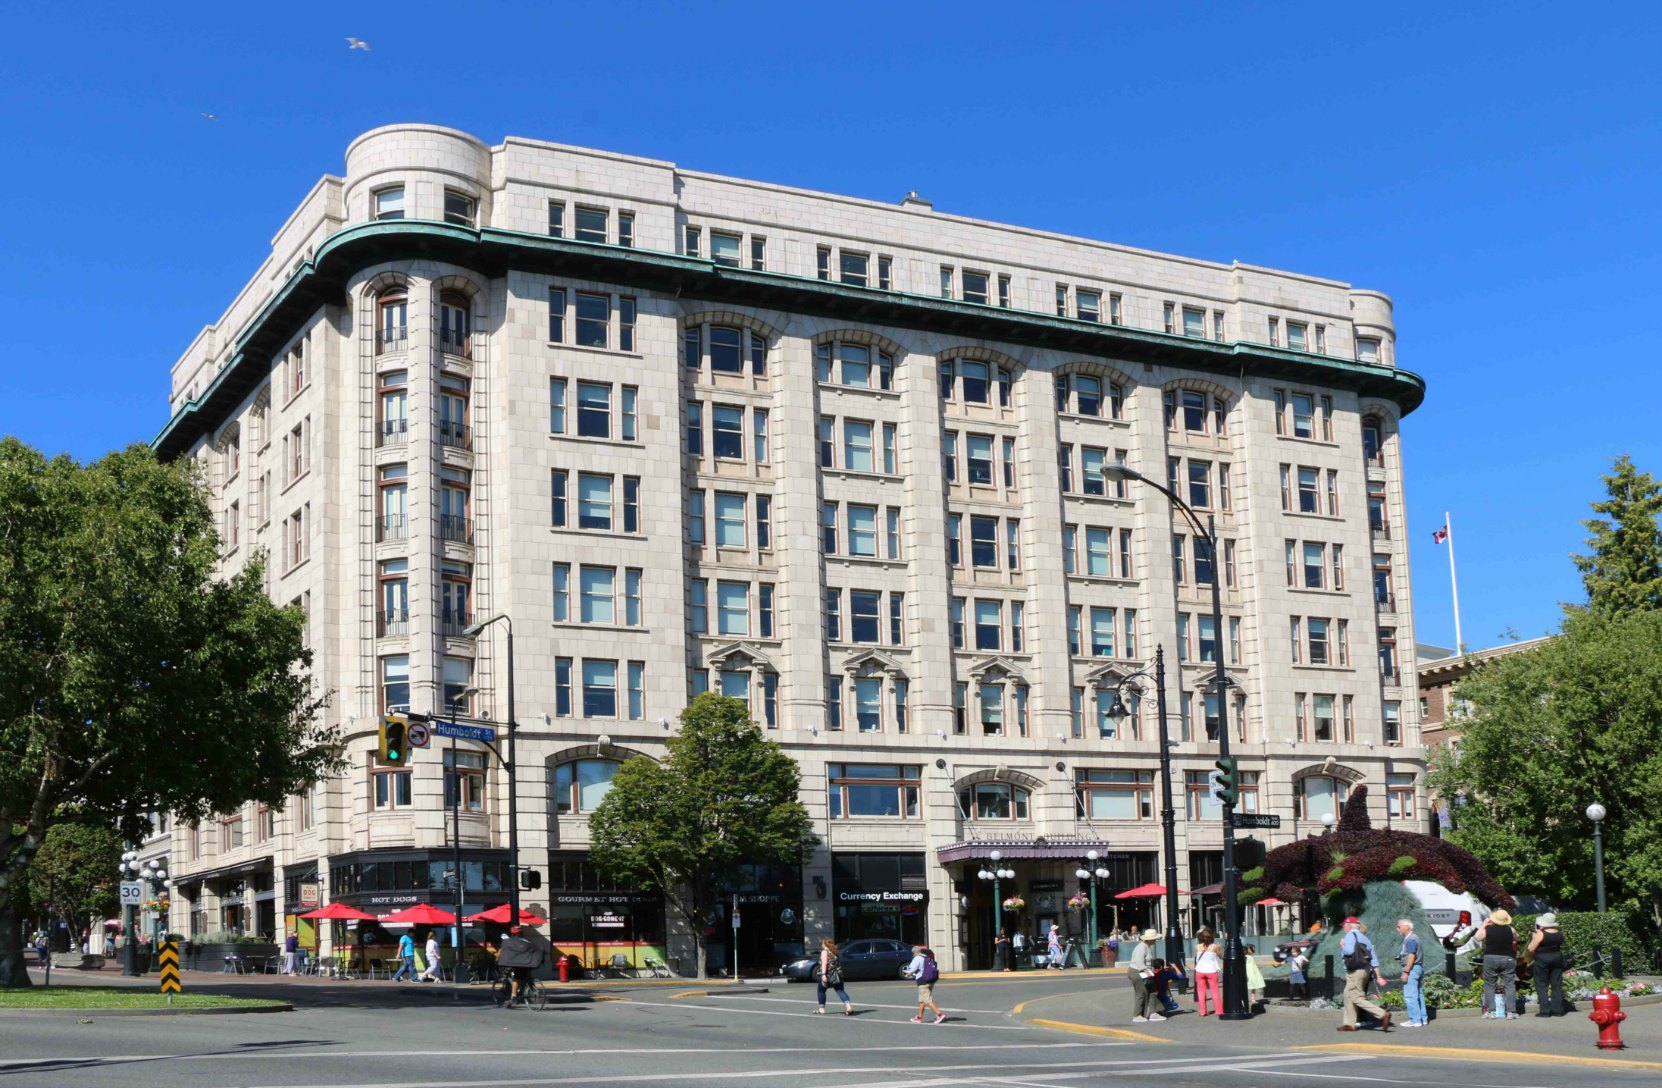 The Belmont Building. 600-620 Humbolt Street / 801-807 Government Street, in downtown Victoria. Robert Butchart and the B.C. Cement Company maintained corporate offices on the third floor of the Belmont Building between 1919 -1943. (photo by Author)